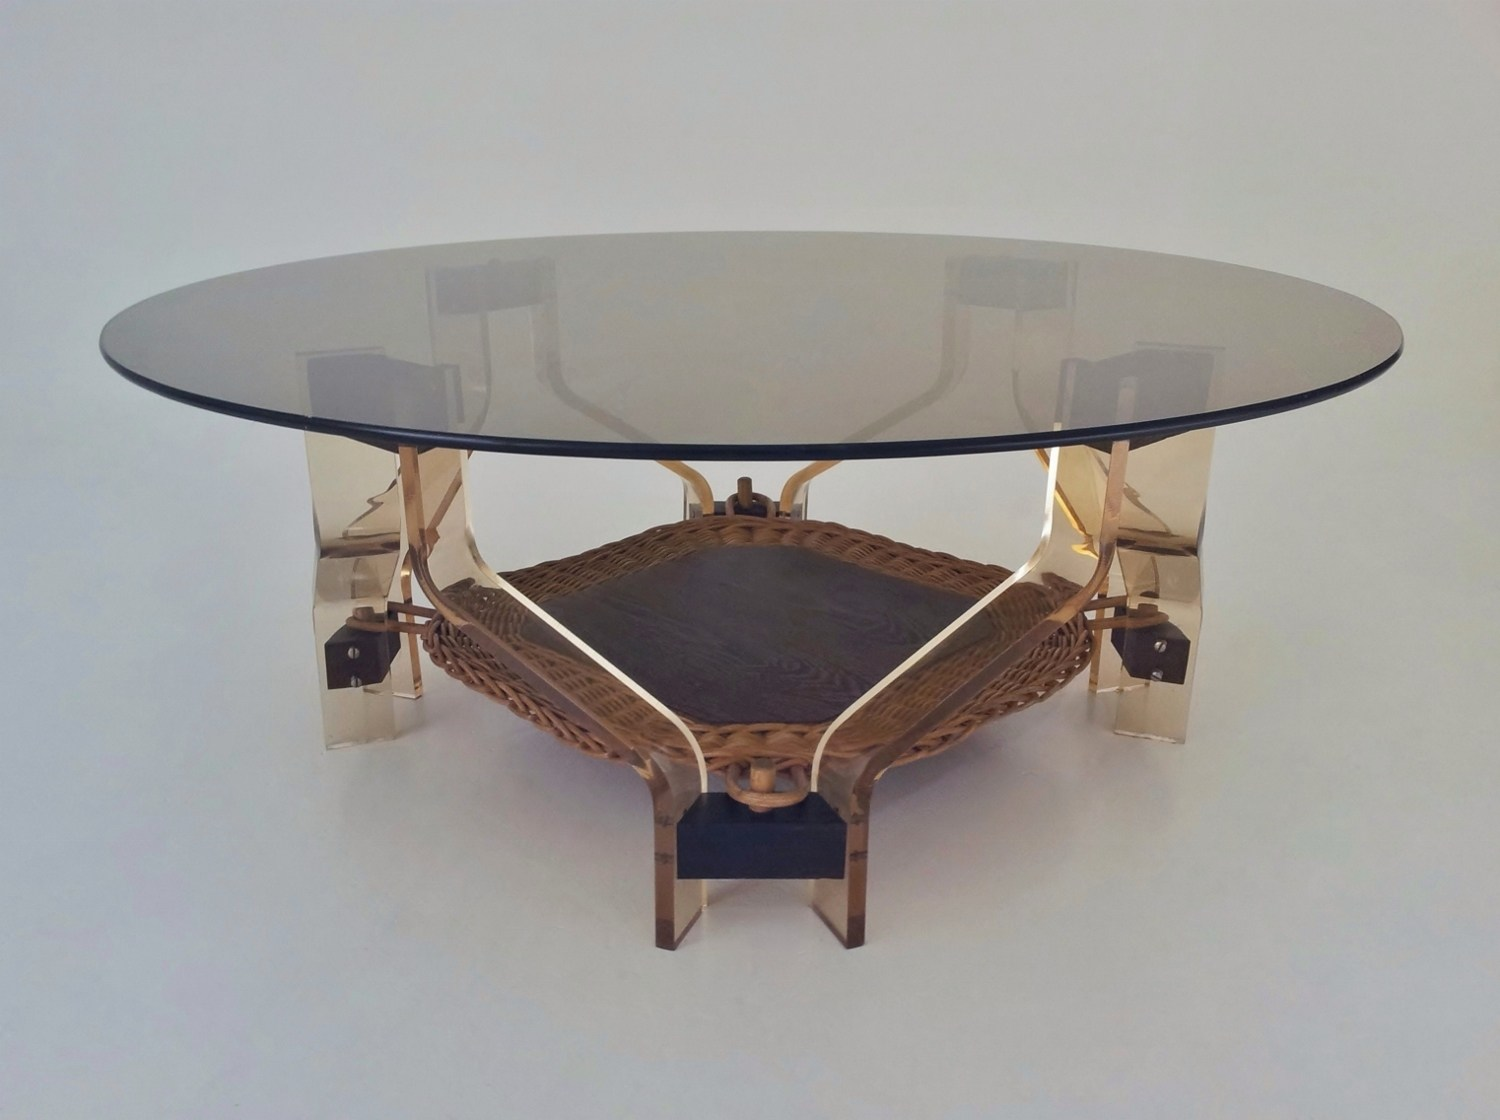 Sculptural Coffee Tables Lucite Wood And Glass Vintage Sculptural Coffee Table With